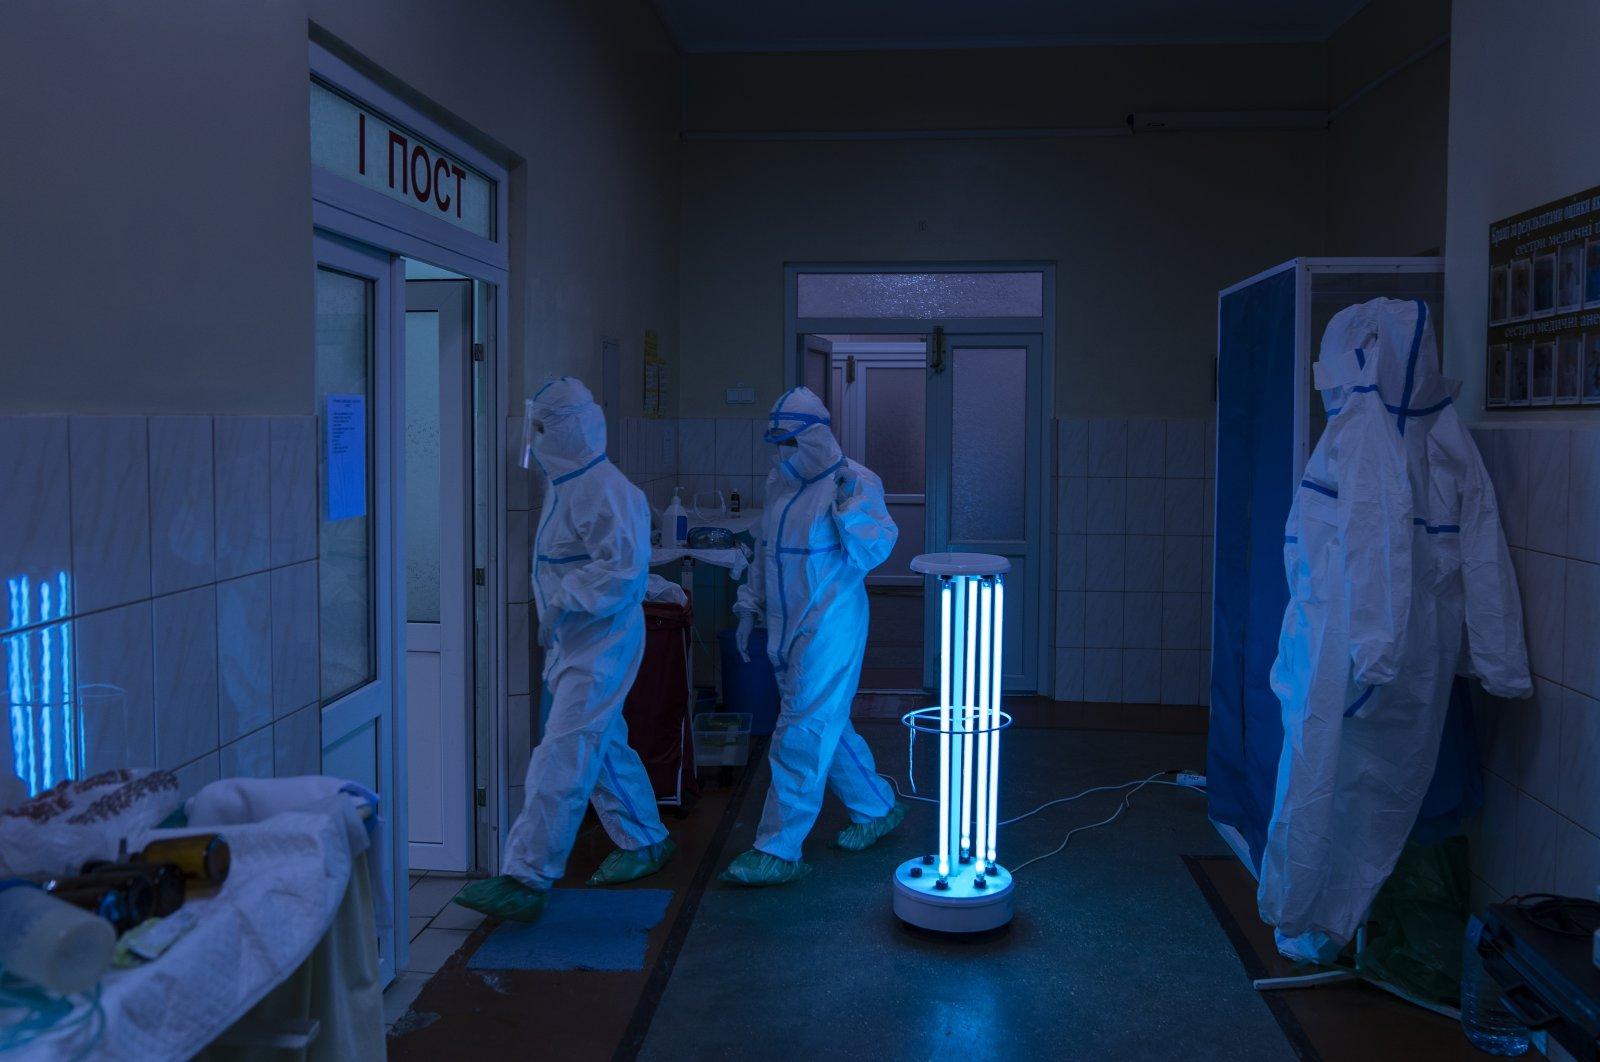 Medical specialists wearing special suits to protect against the coronavirus walk through a disinfectant corridor toward the intensive care unit at a regional hospital in Chernivtsi, Ukraine, May 4, 2020. (AP Photo)